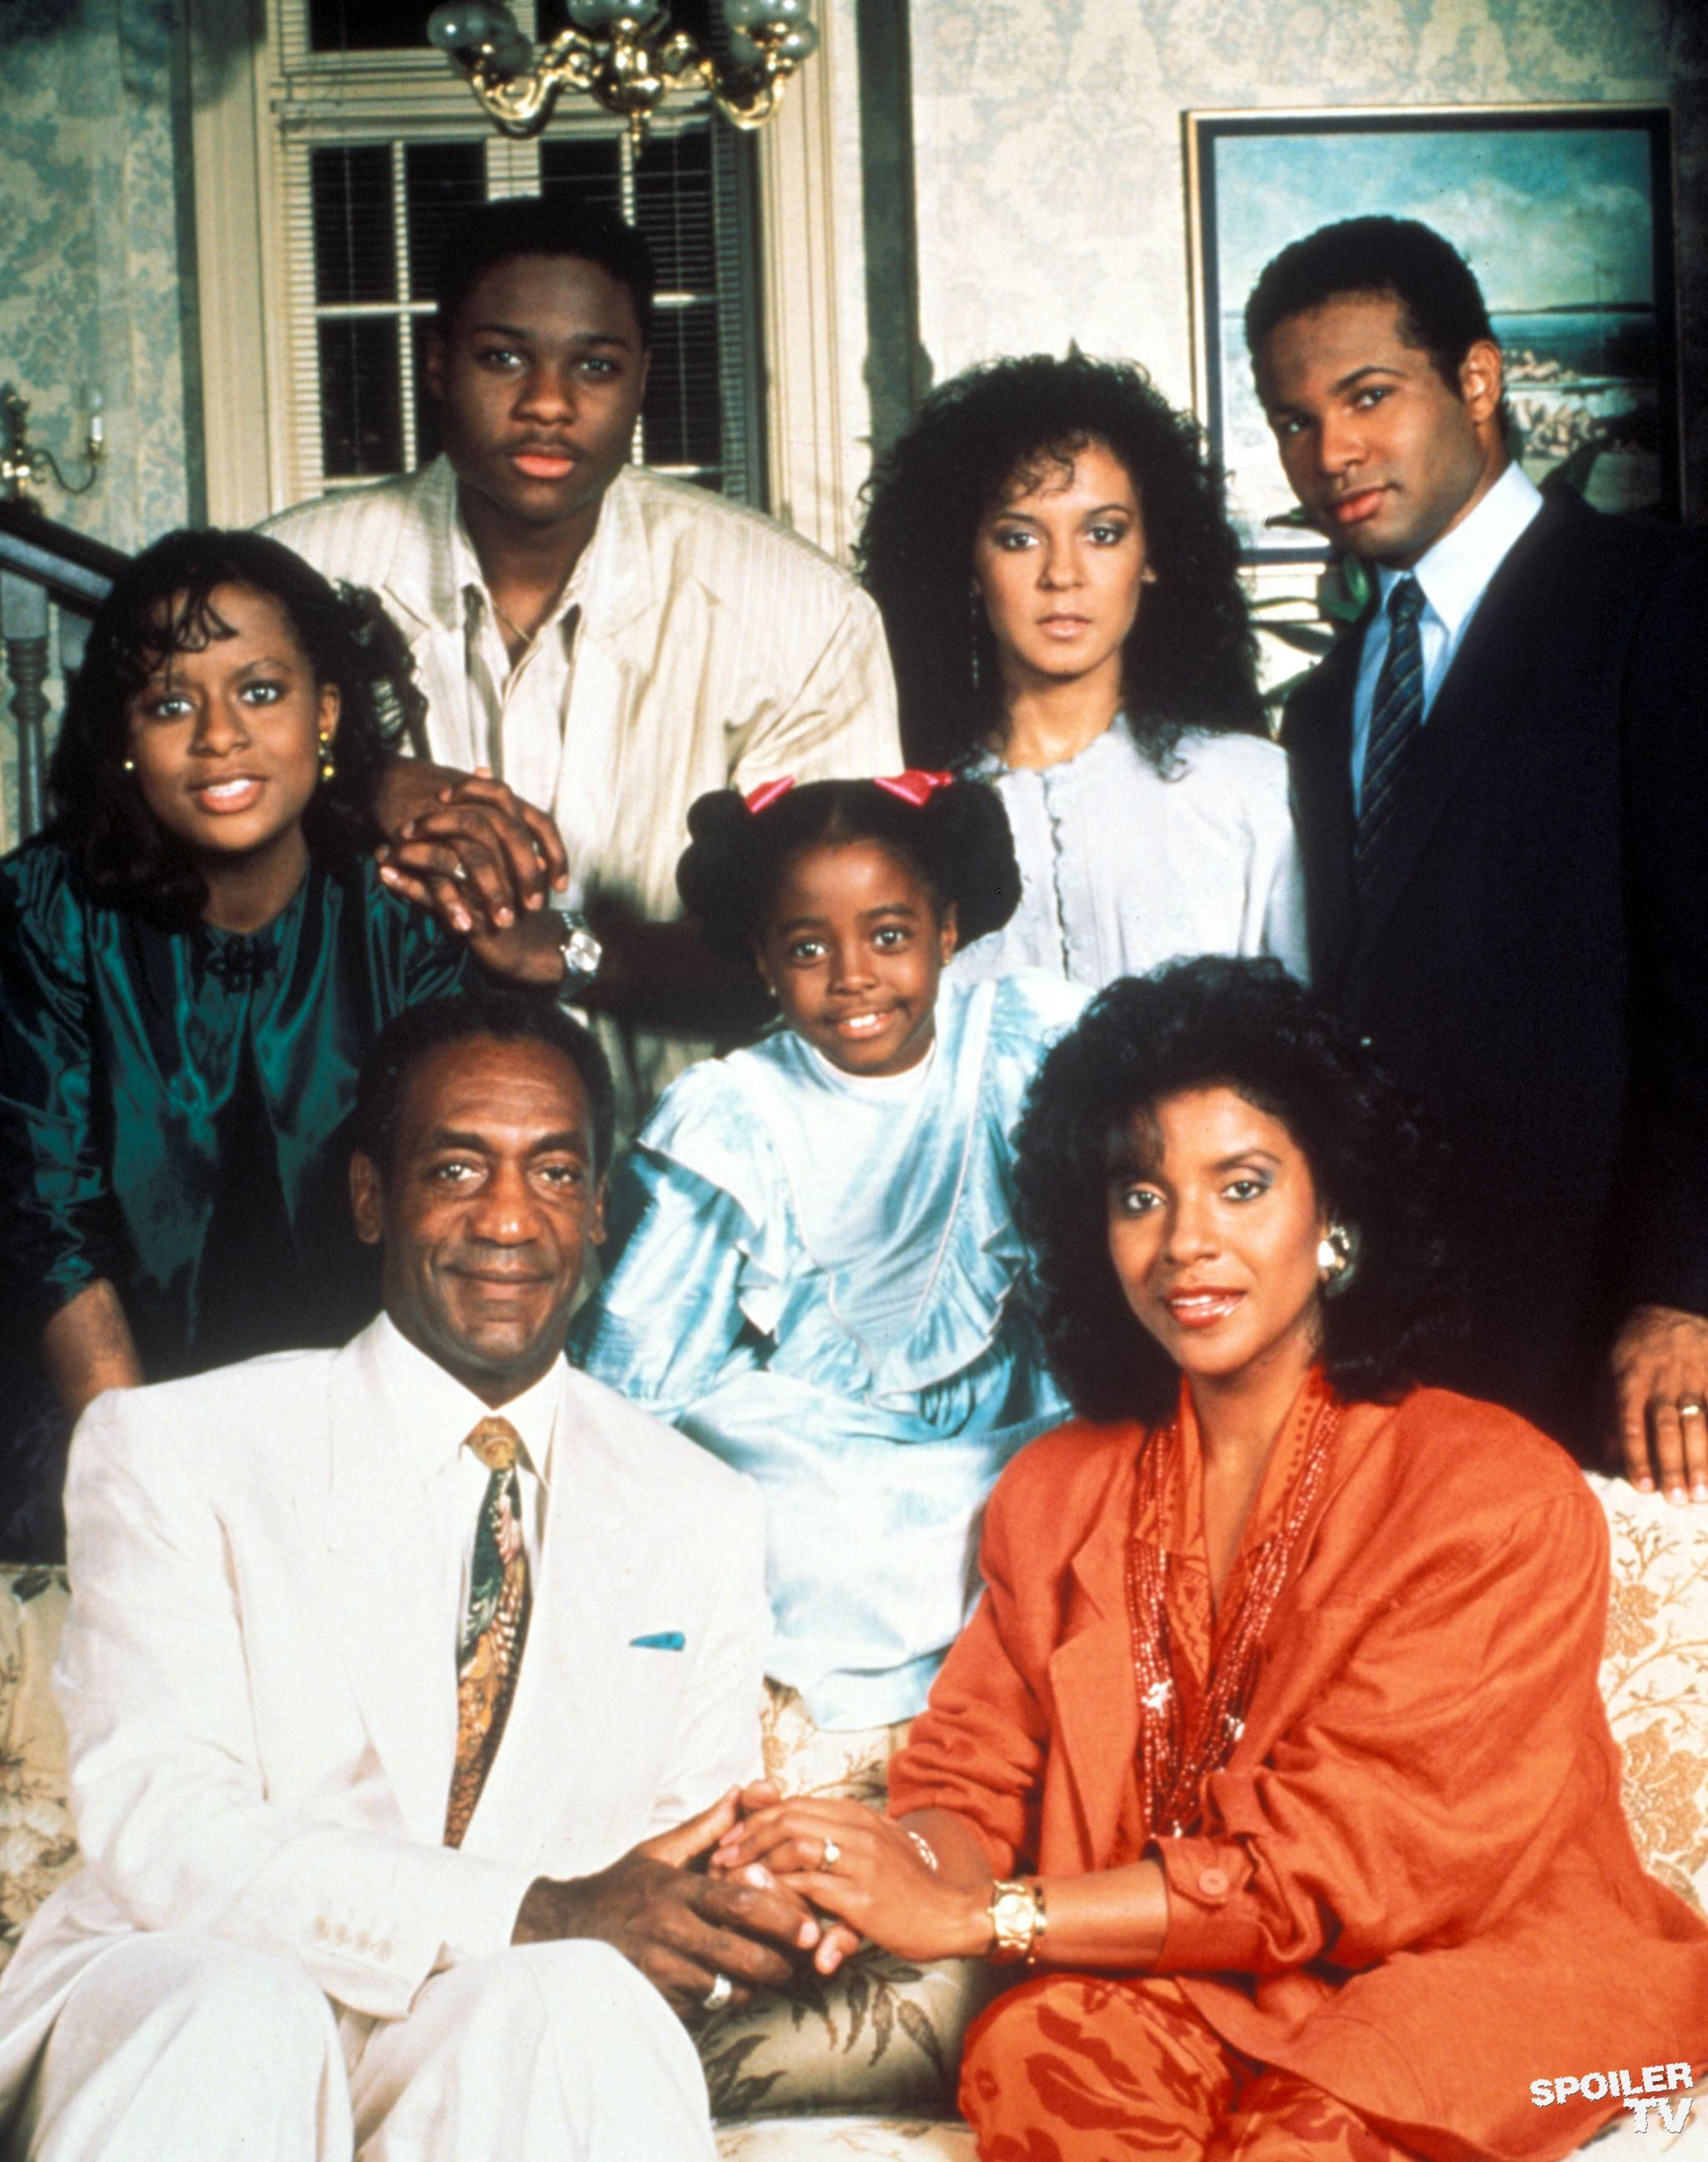 Bill cosby family photos - Cast Of The Cosby Show